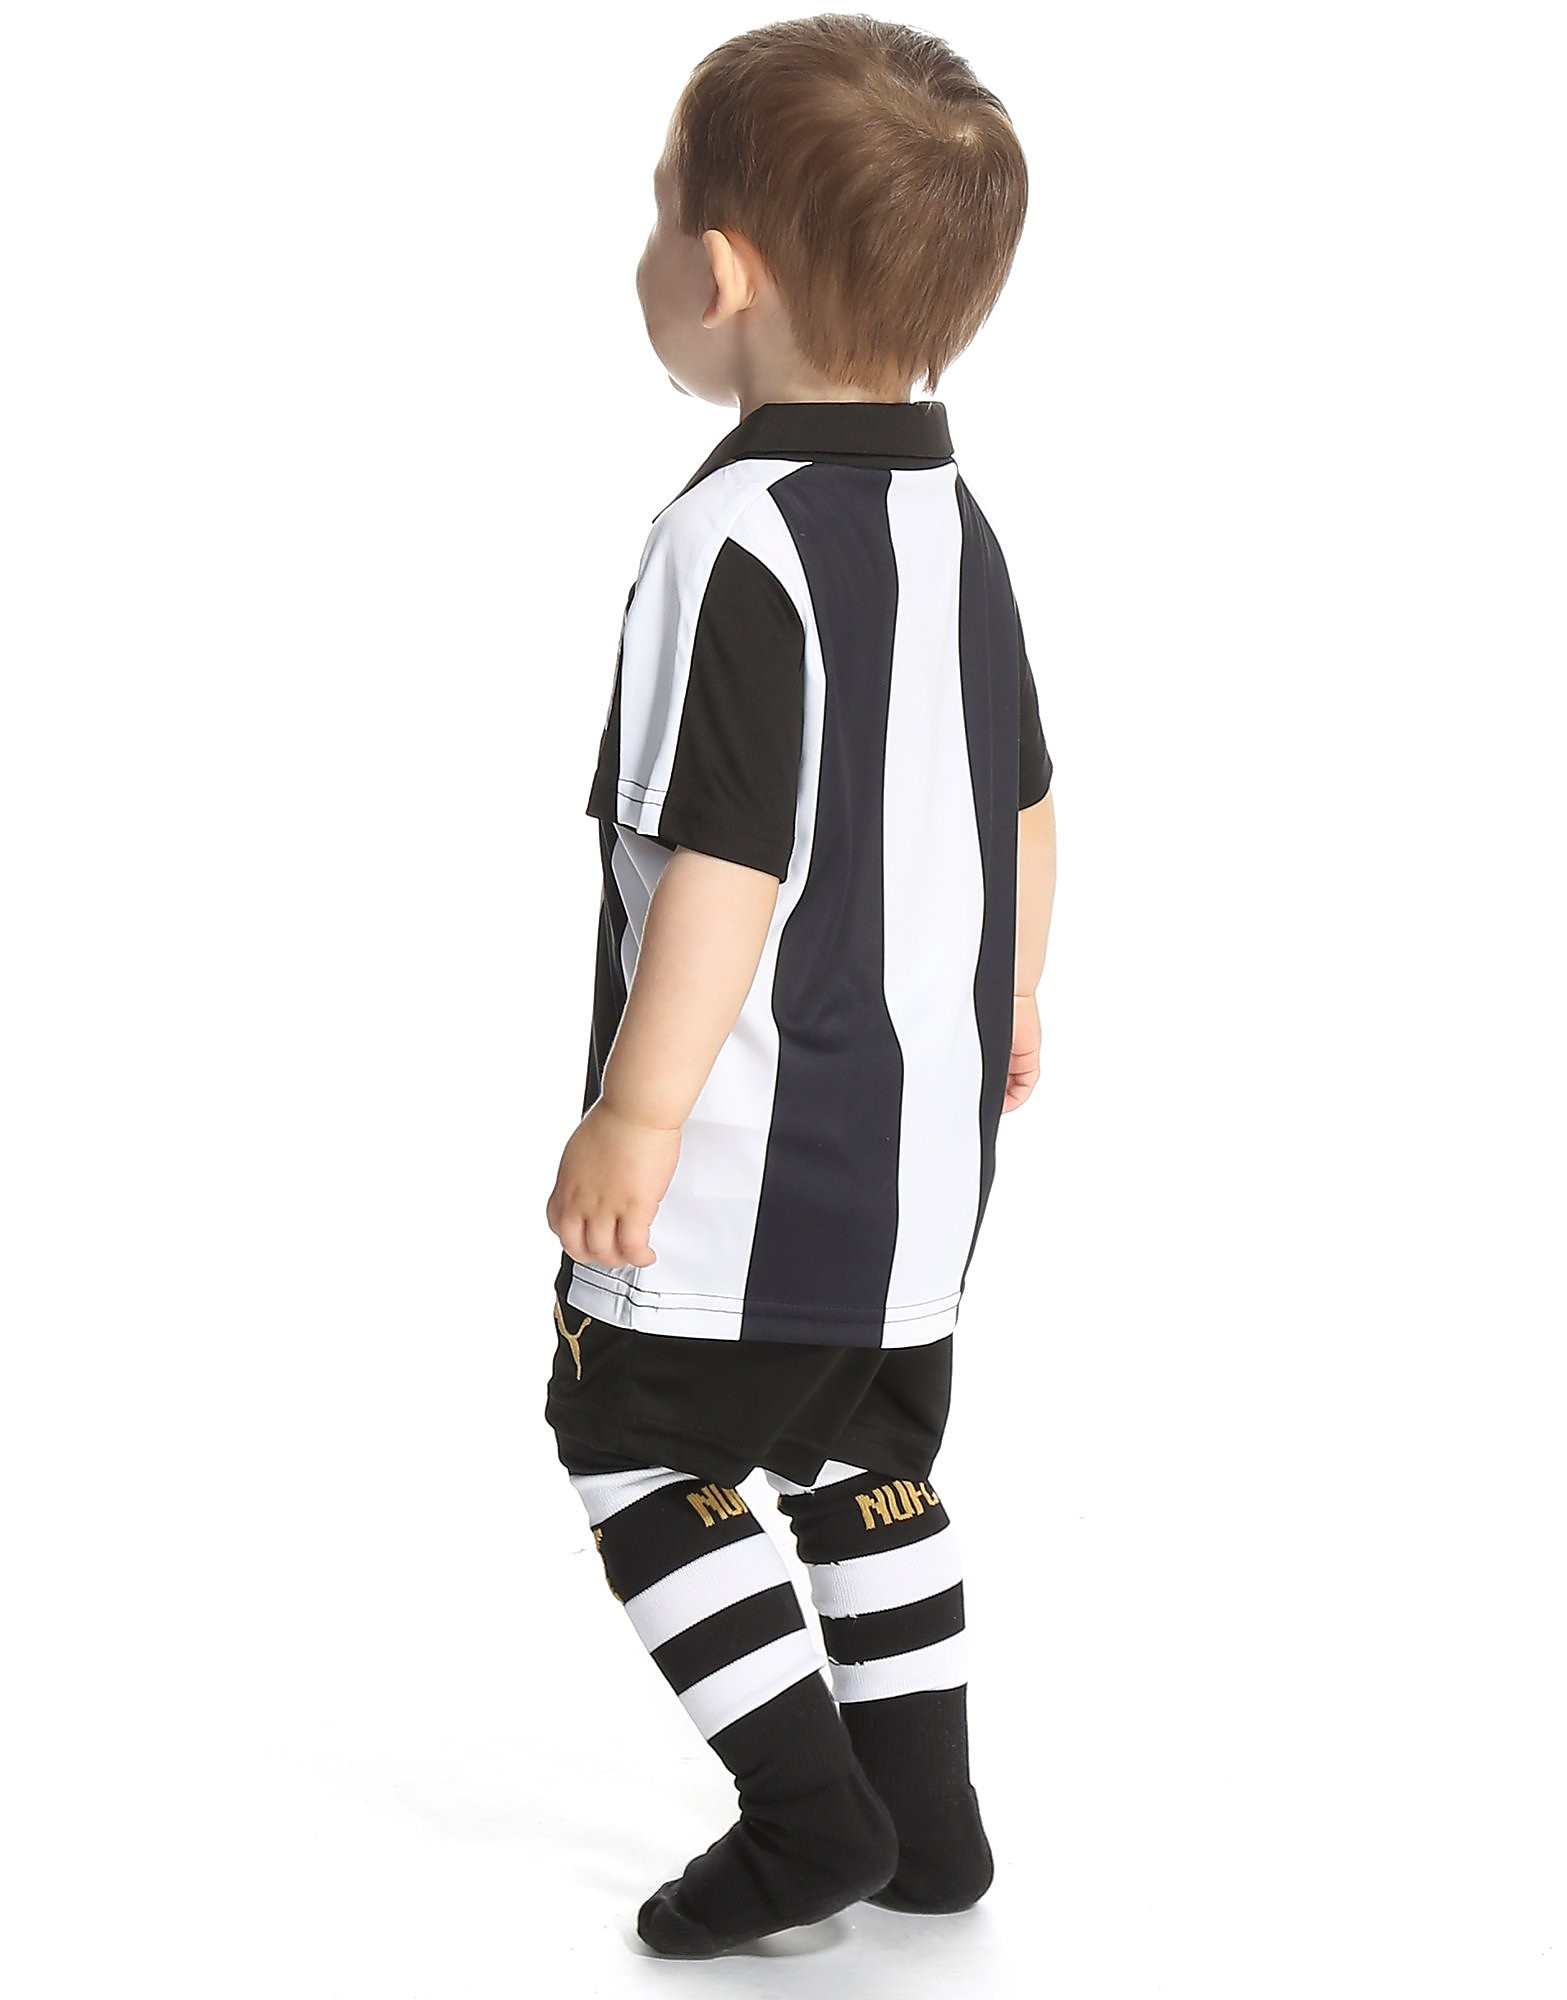 PUMA Newcastle United 2016/17 Home Kit Children